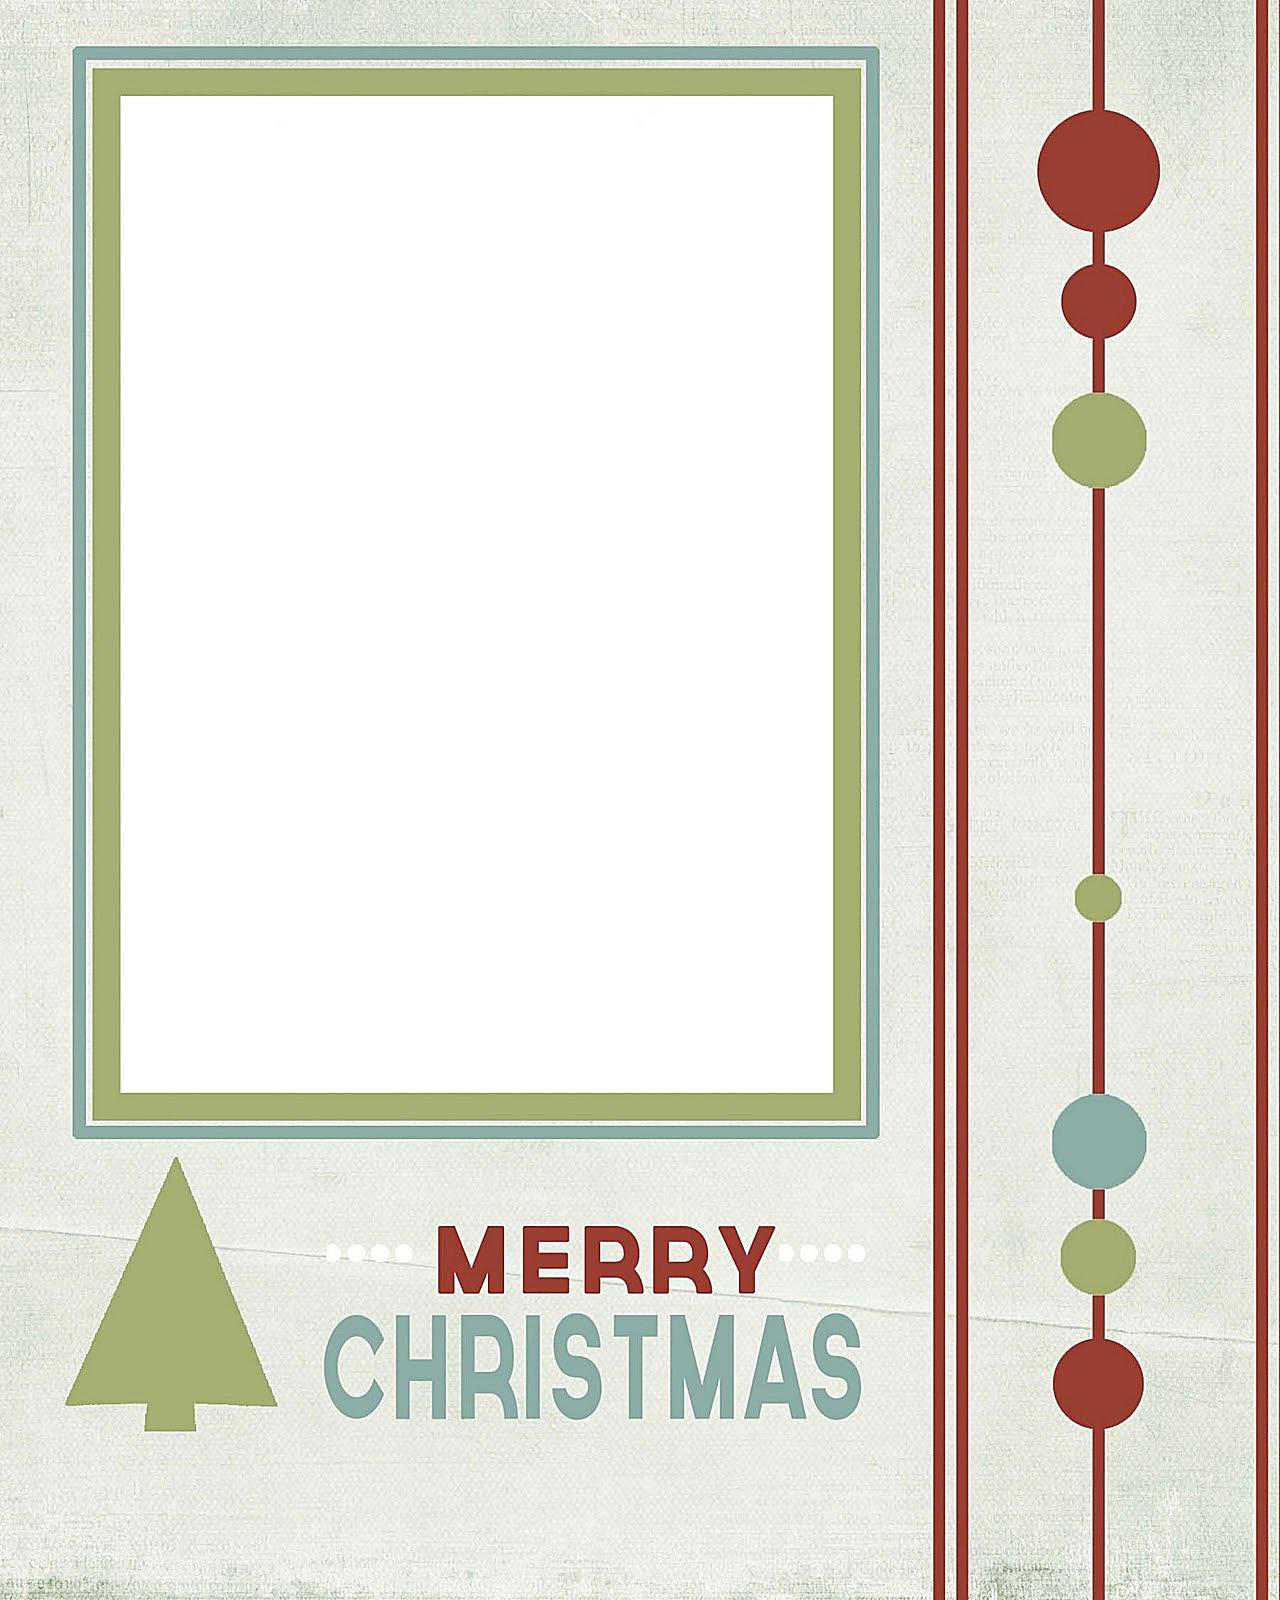 85 Visiting Christmas Card Template 4X6 Formating with Christmas Card Template 4X6